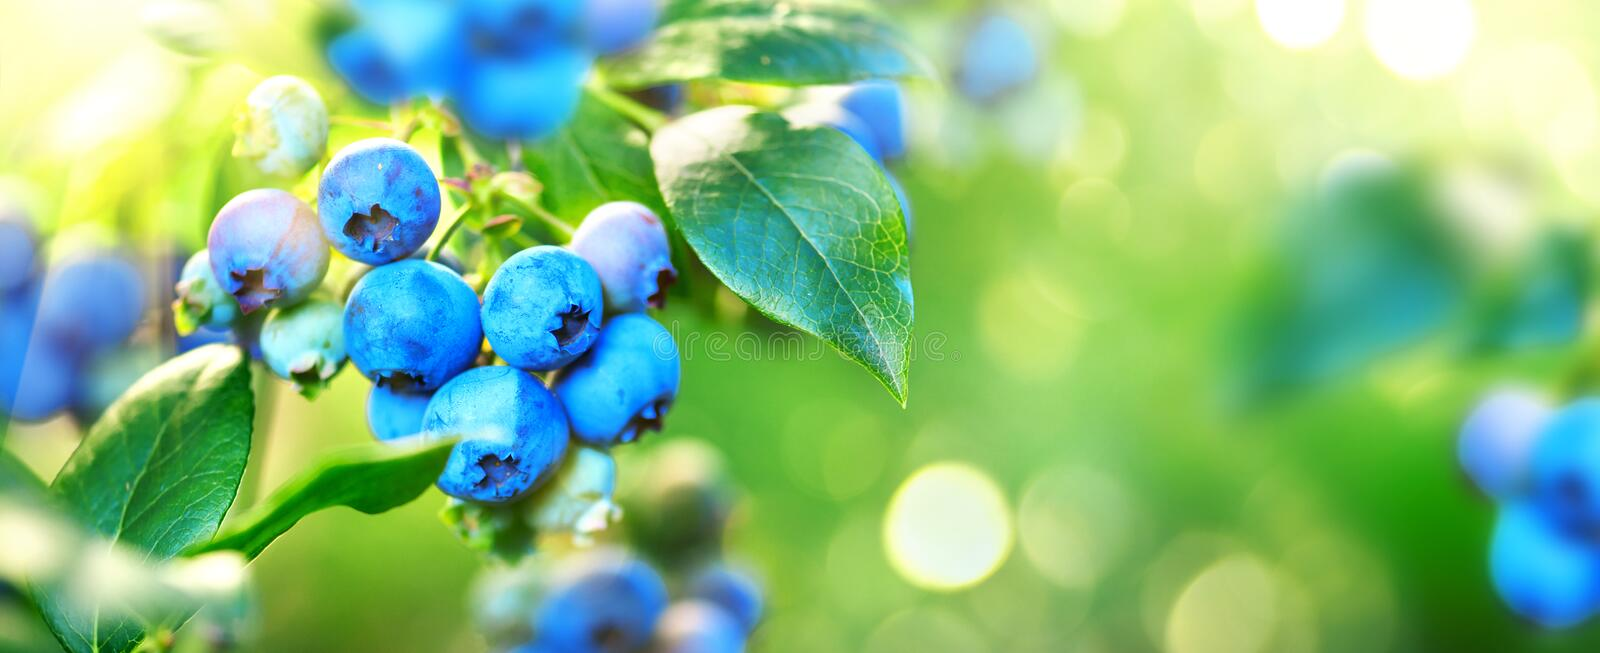 Blueberry plant. Fresh and ripe organic Blueberries growing in a garden. Healthy food. Agriculture. Wide screen royalty free stock photography